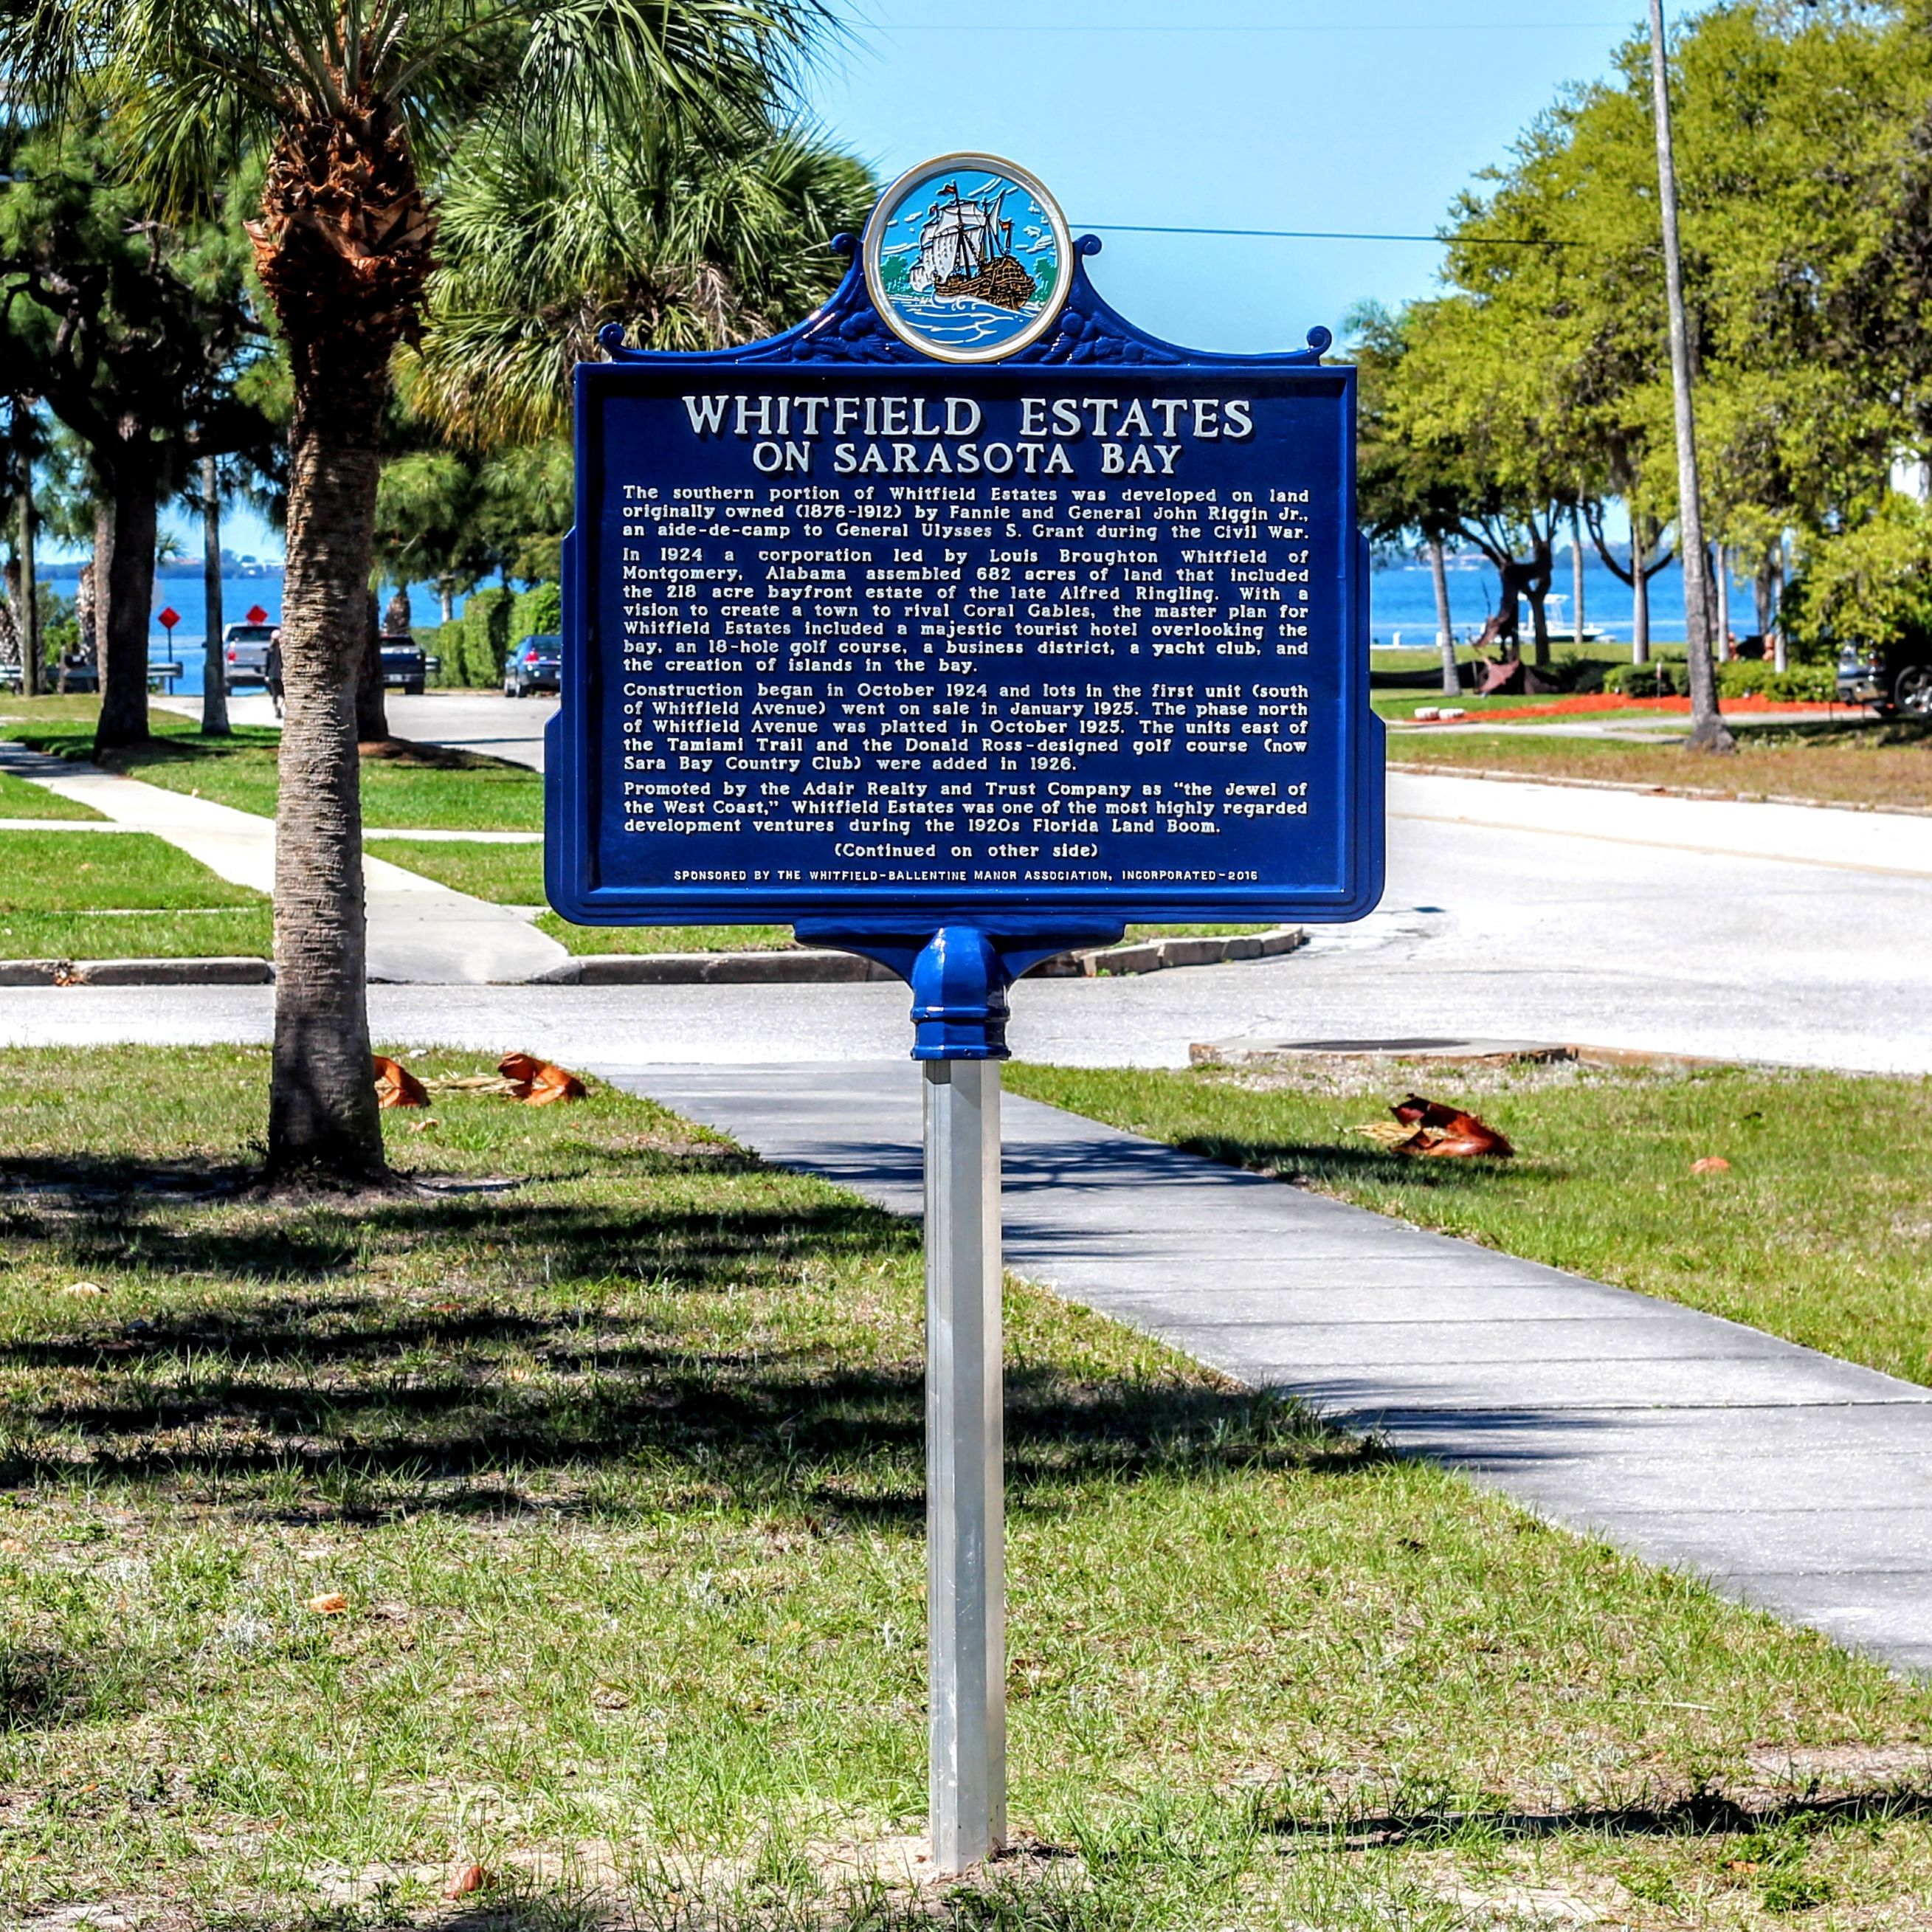 Whitfield estates historical marker ixfnhh